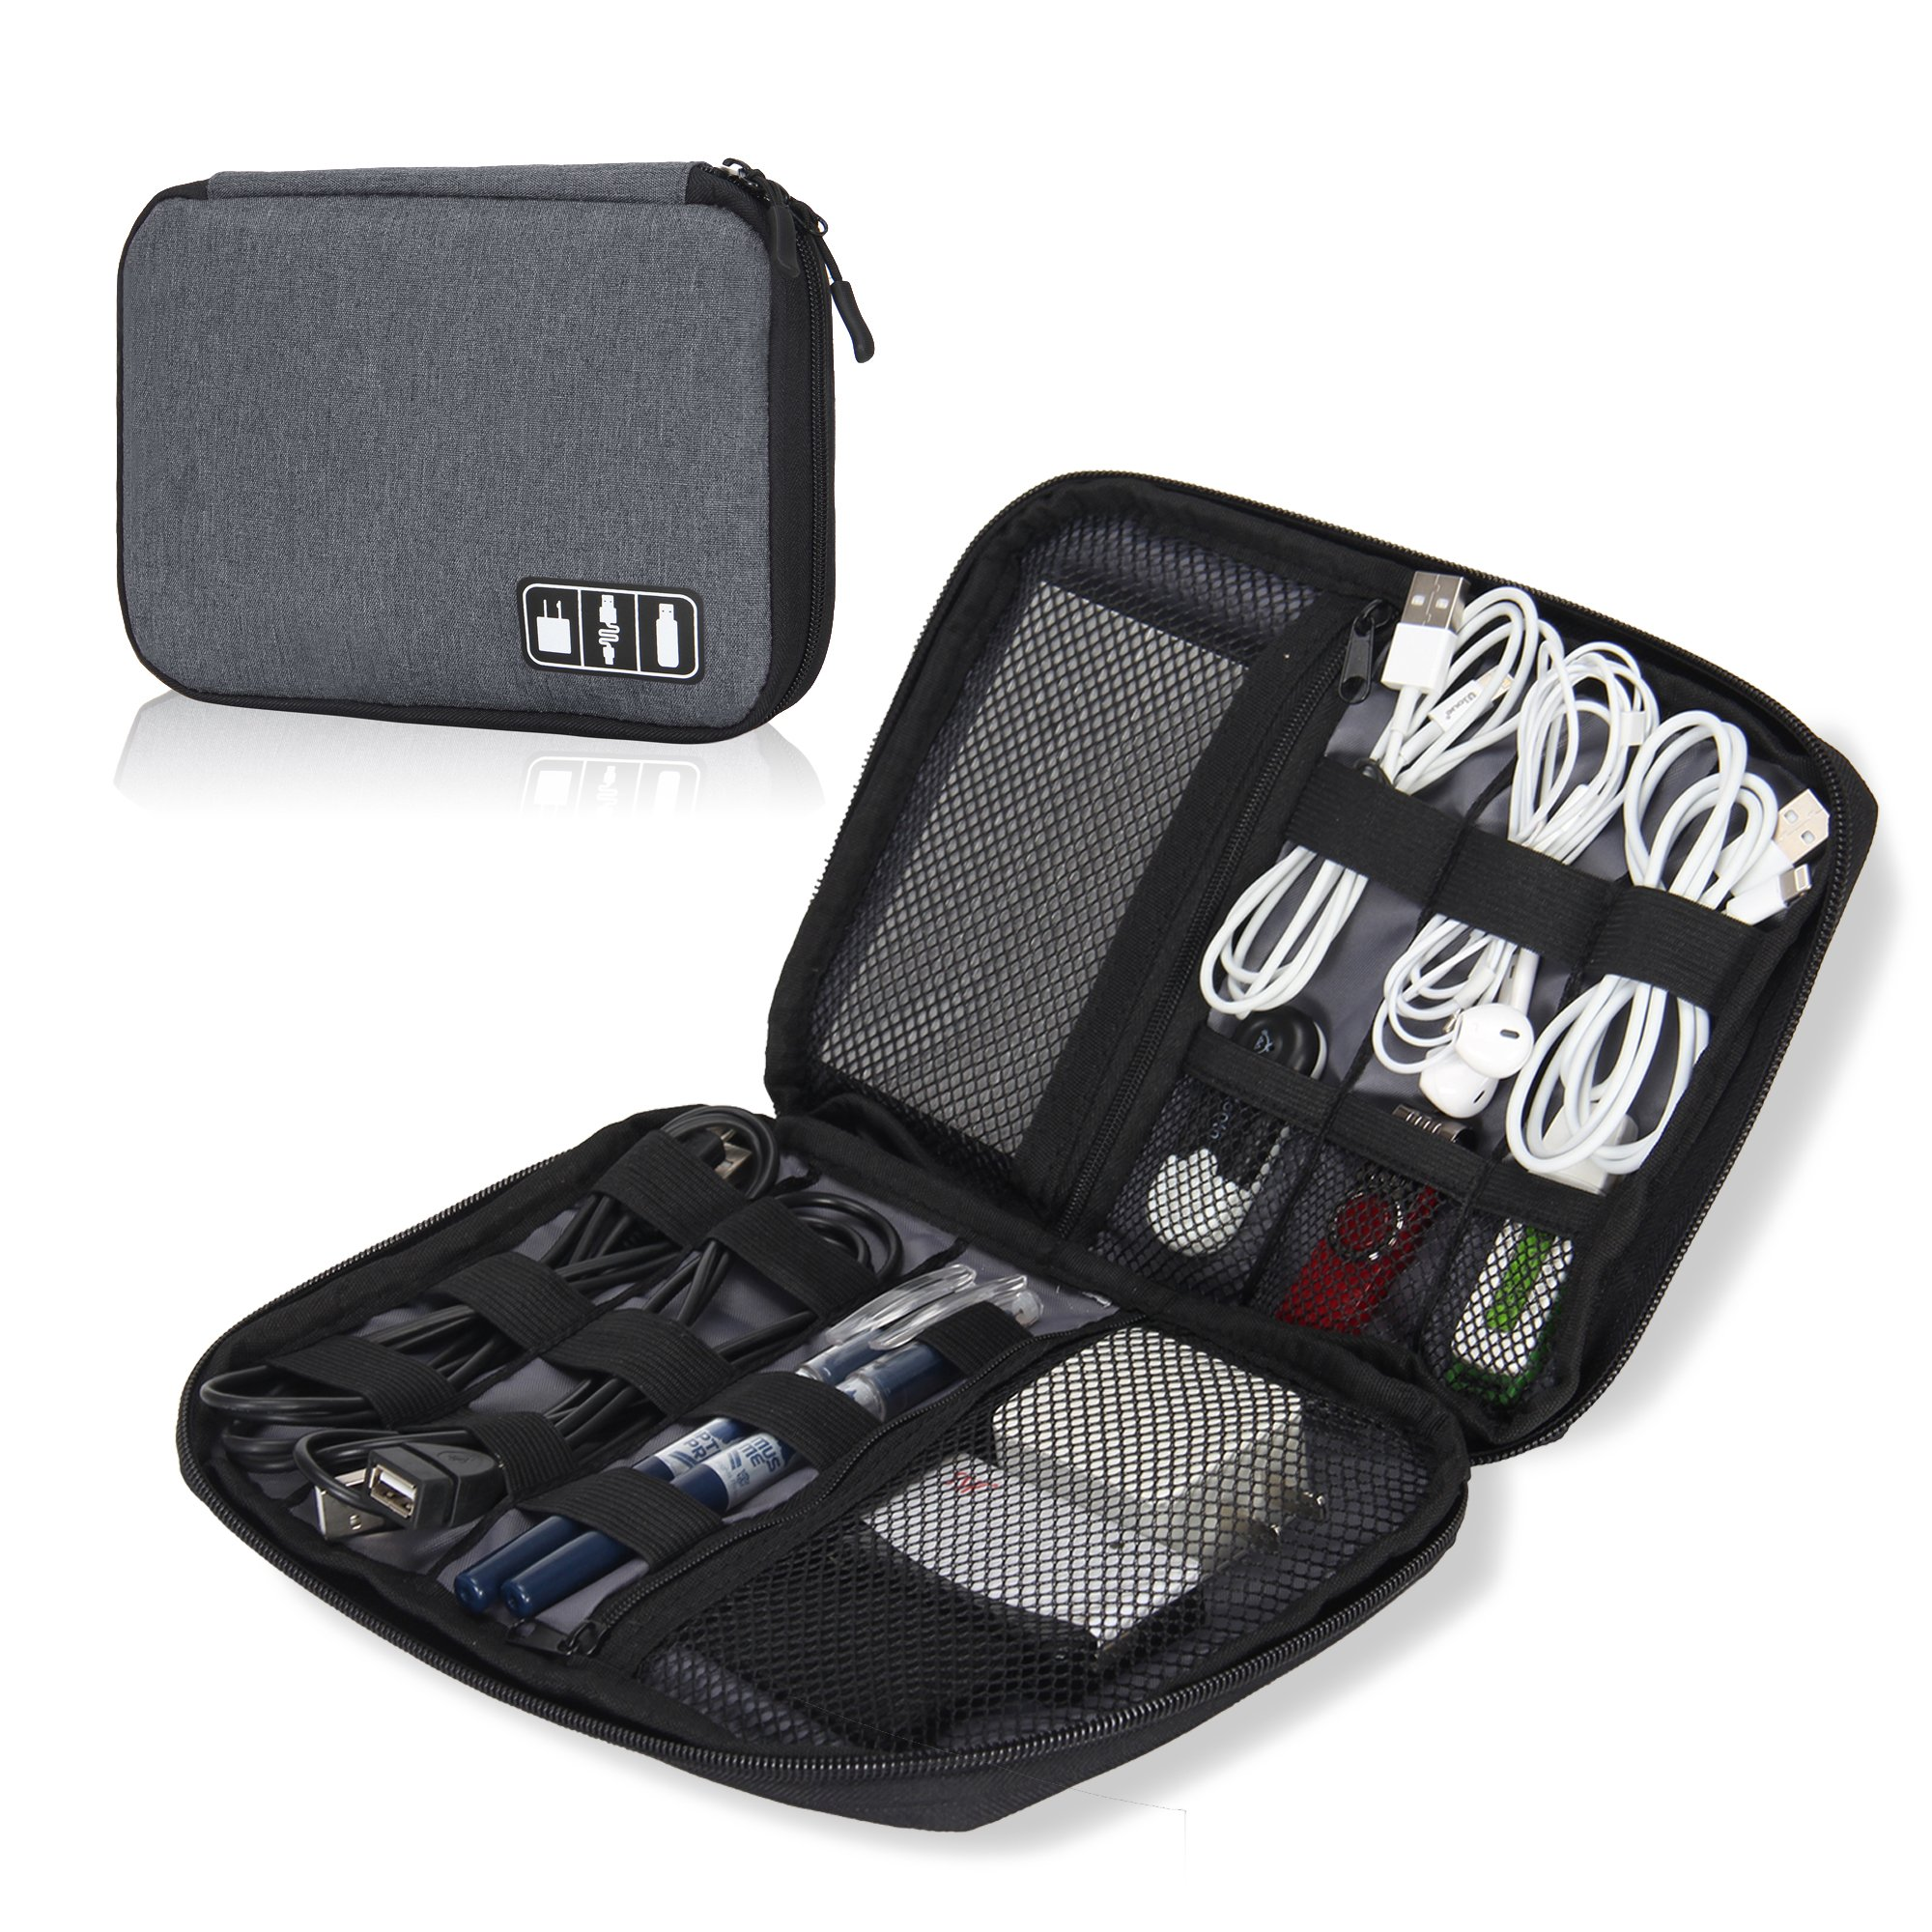 Hynes Eagle Travel Universal Cable Organizer Electronics Accessories Cases For Various USB, Phone, Charger and Cable, Grey